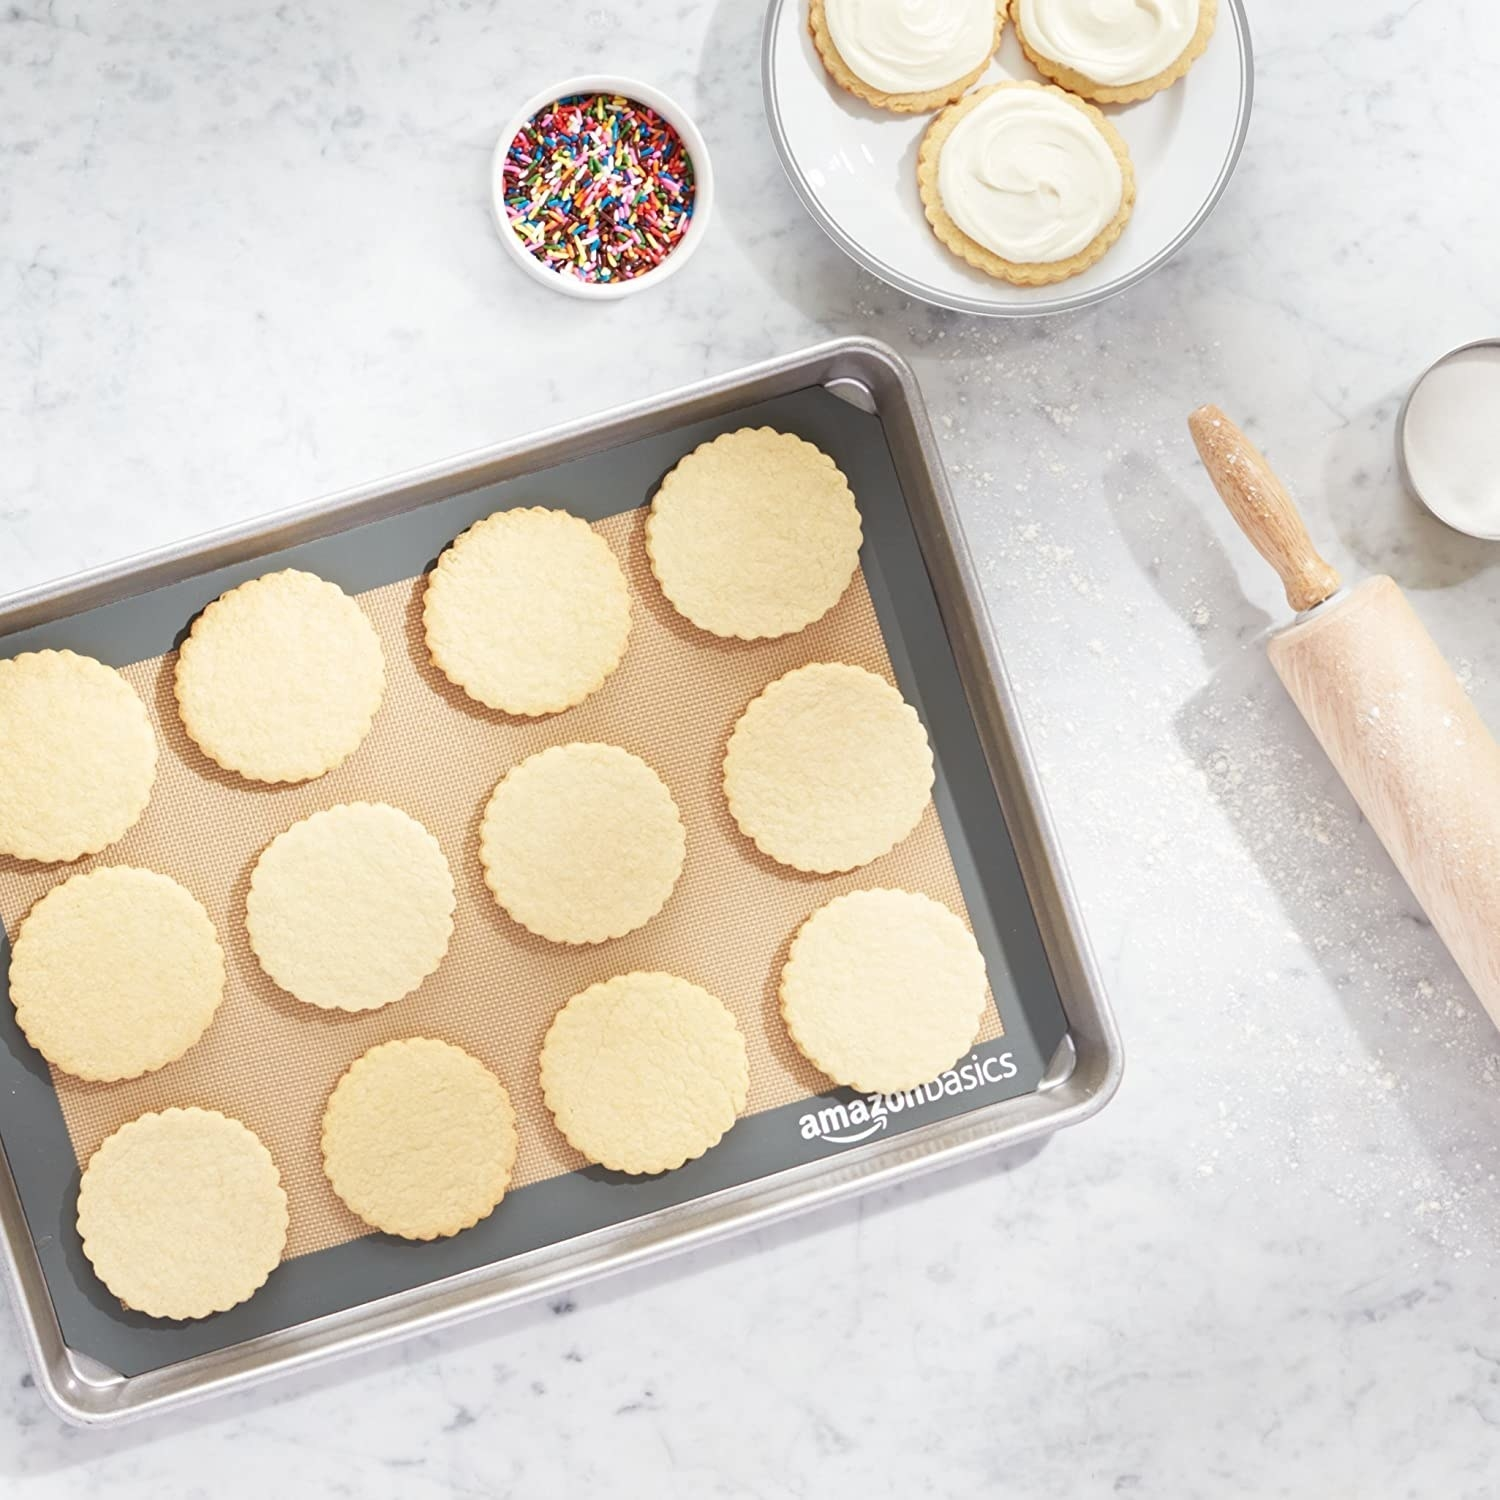 The baking mat pictured with baked cookies on it